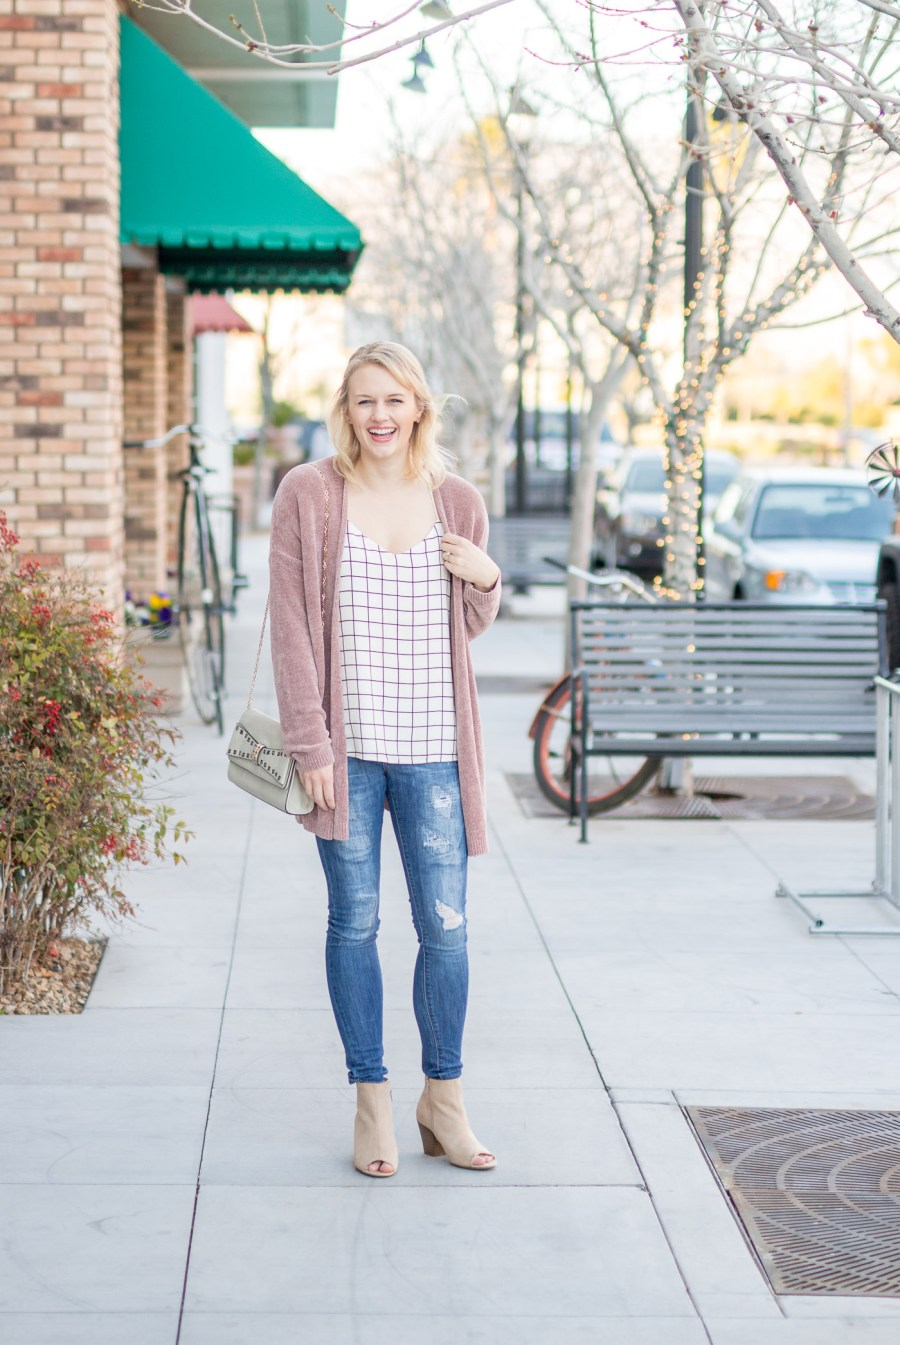 Where I Find Fashion Inspiration, fashion blog, Treats and Trends, Jamie Kamber, spring outfit idea